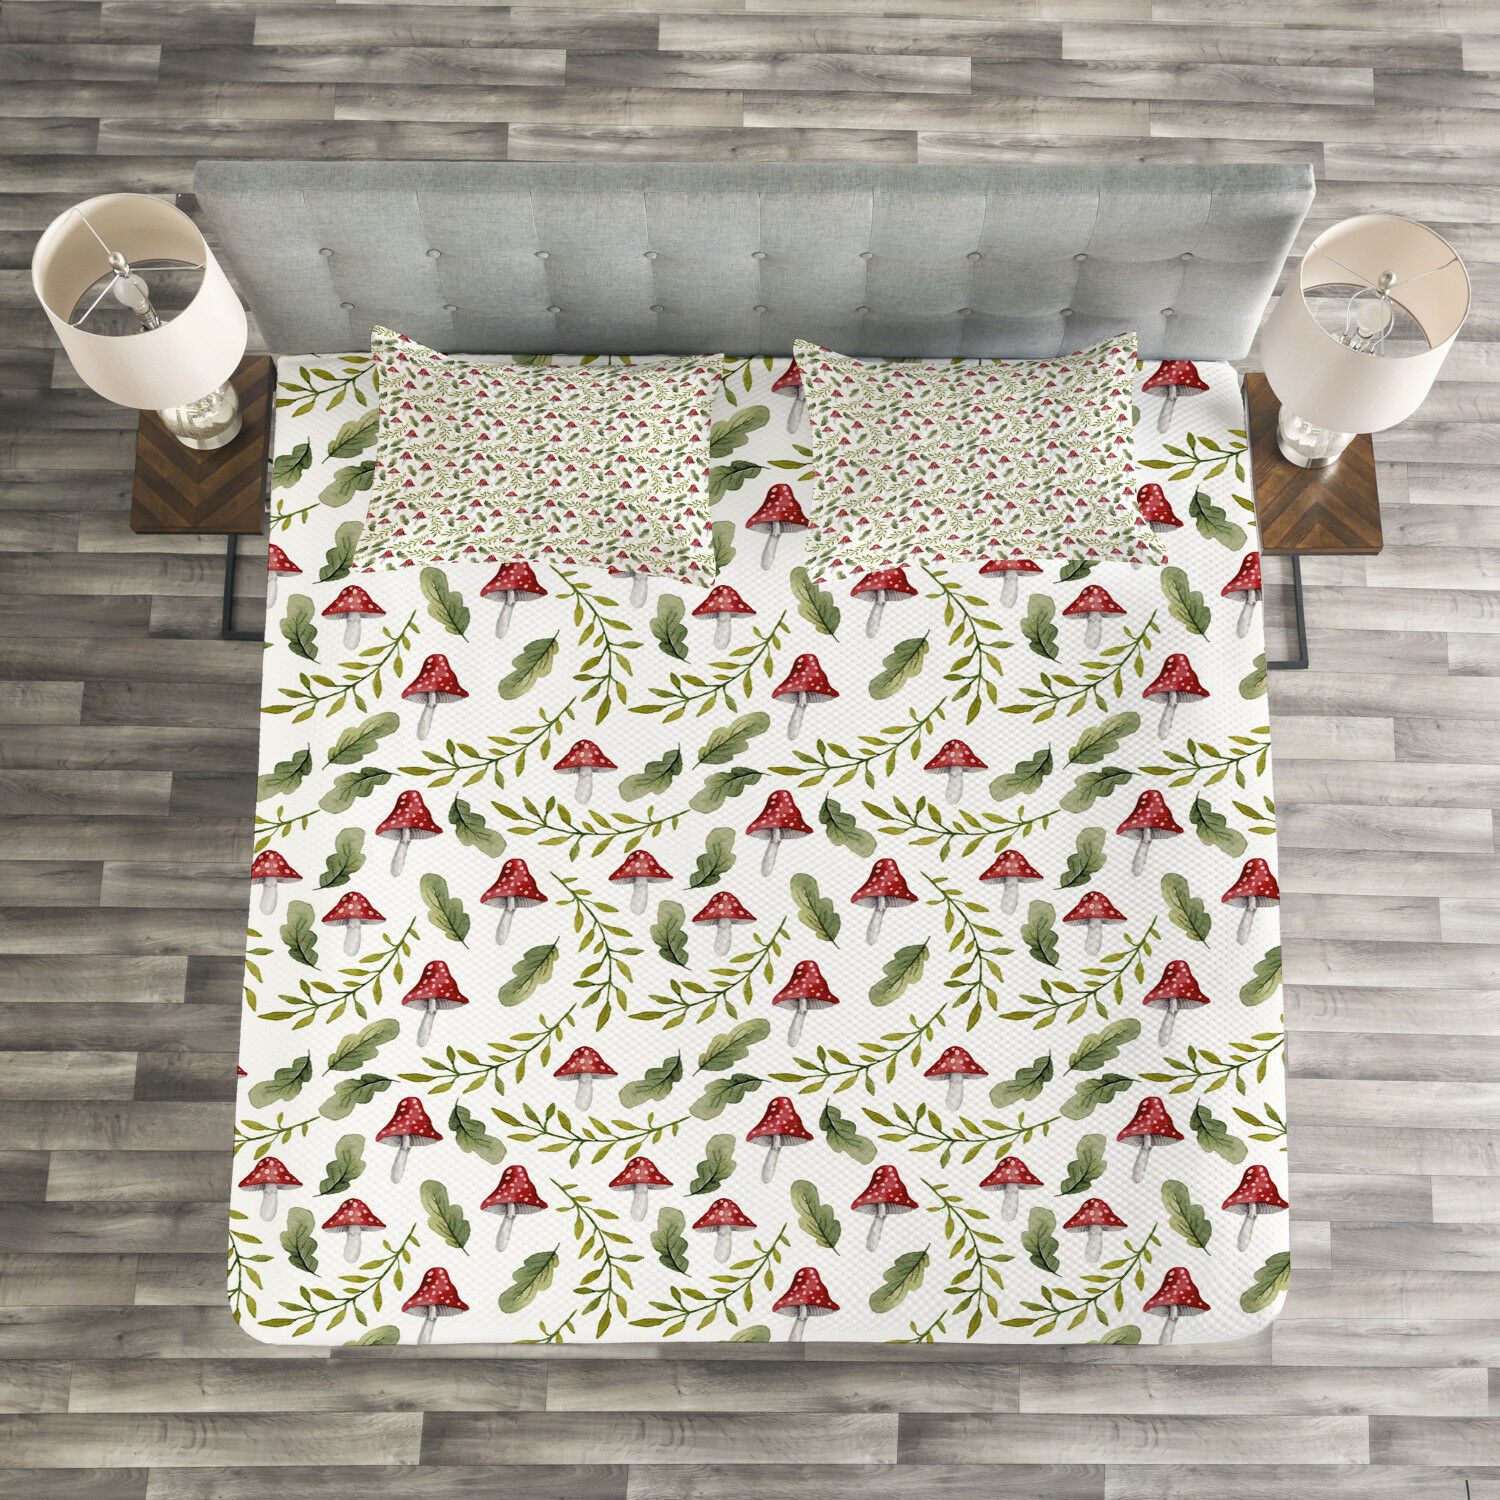 Mushroom Quilted Bedspread & Pillow Shams Set, Leaves Forest Elements Print